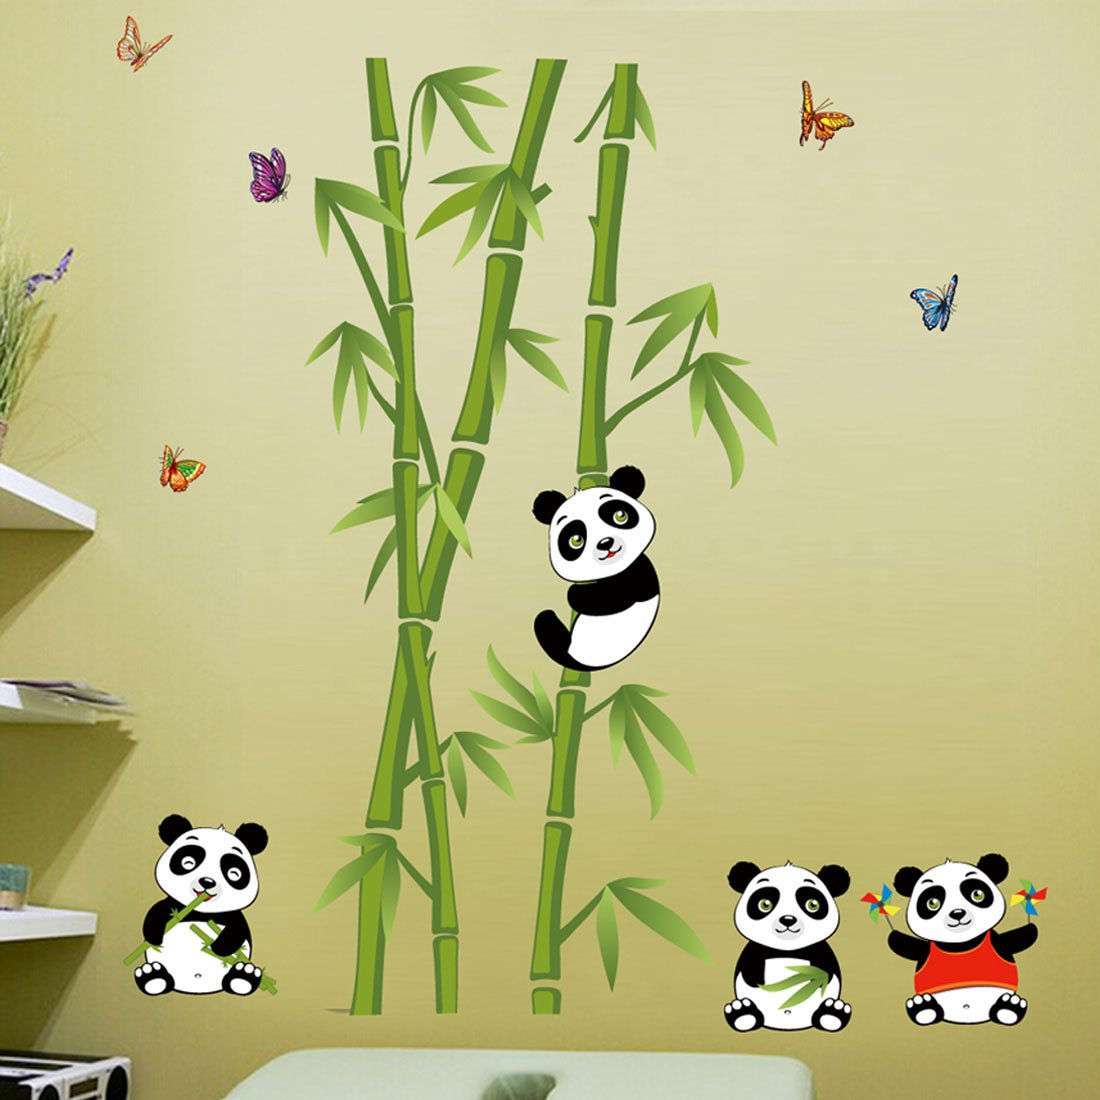 Amazon.com: Voberry Home Decor Mural Vinyl Wall Sticker Removable ...